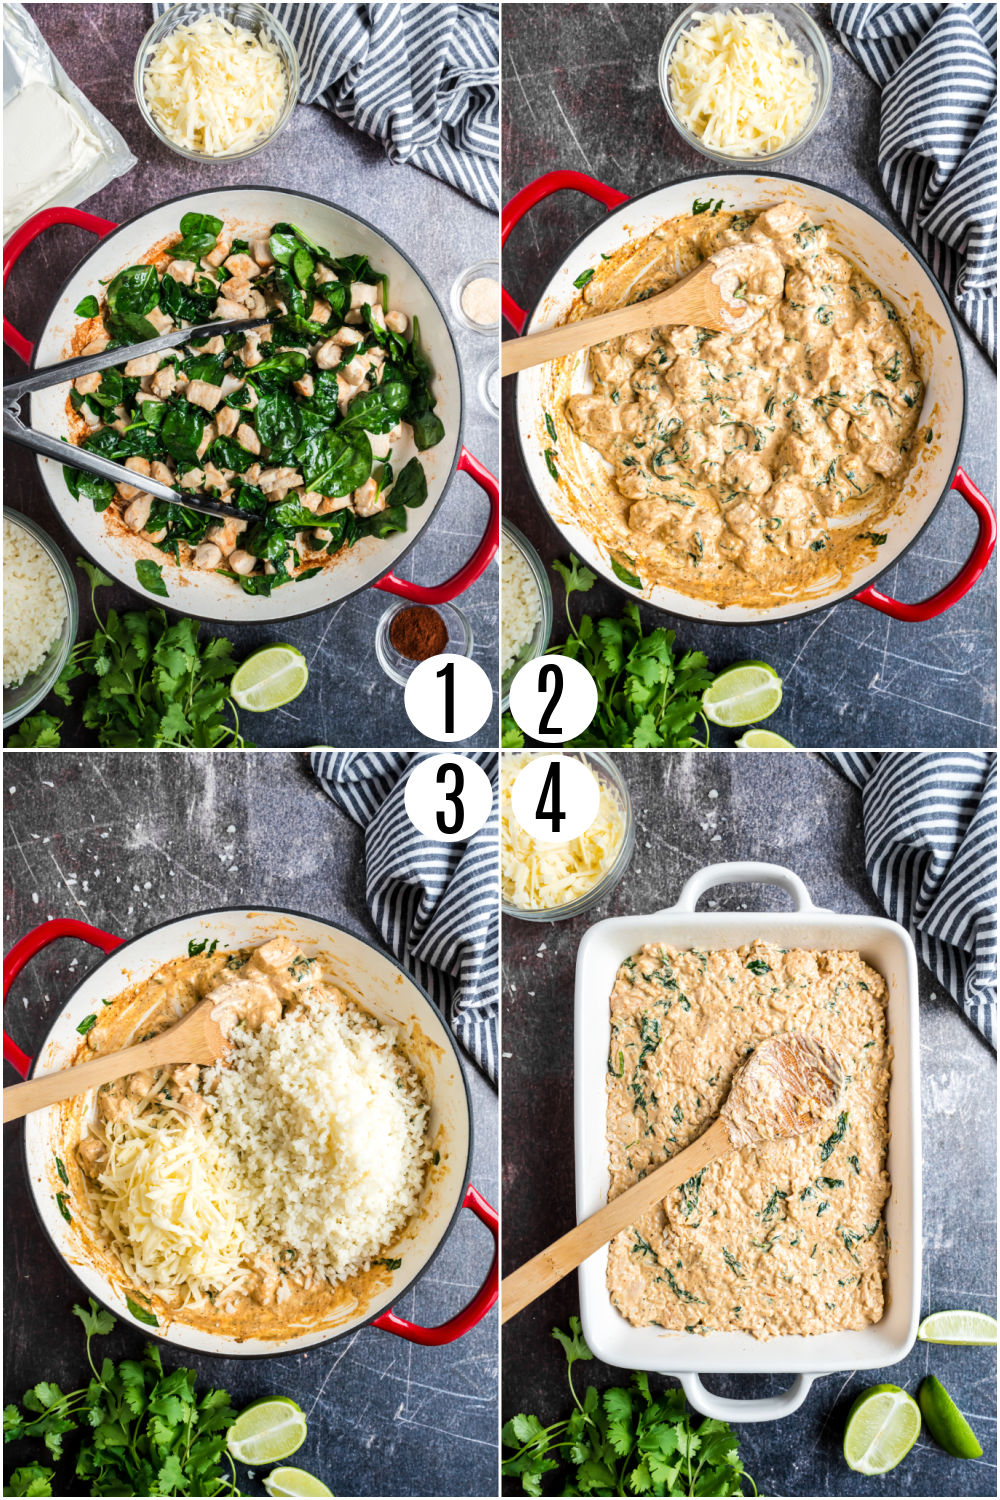 Step by step photos showing how to make chicken and cauliflower rice casserole.